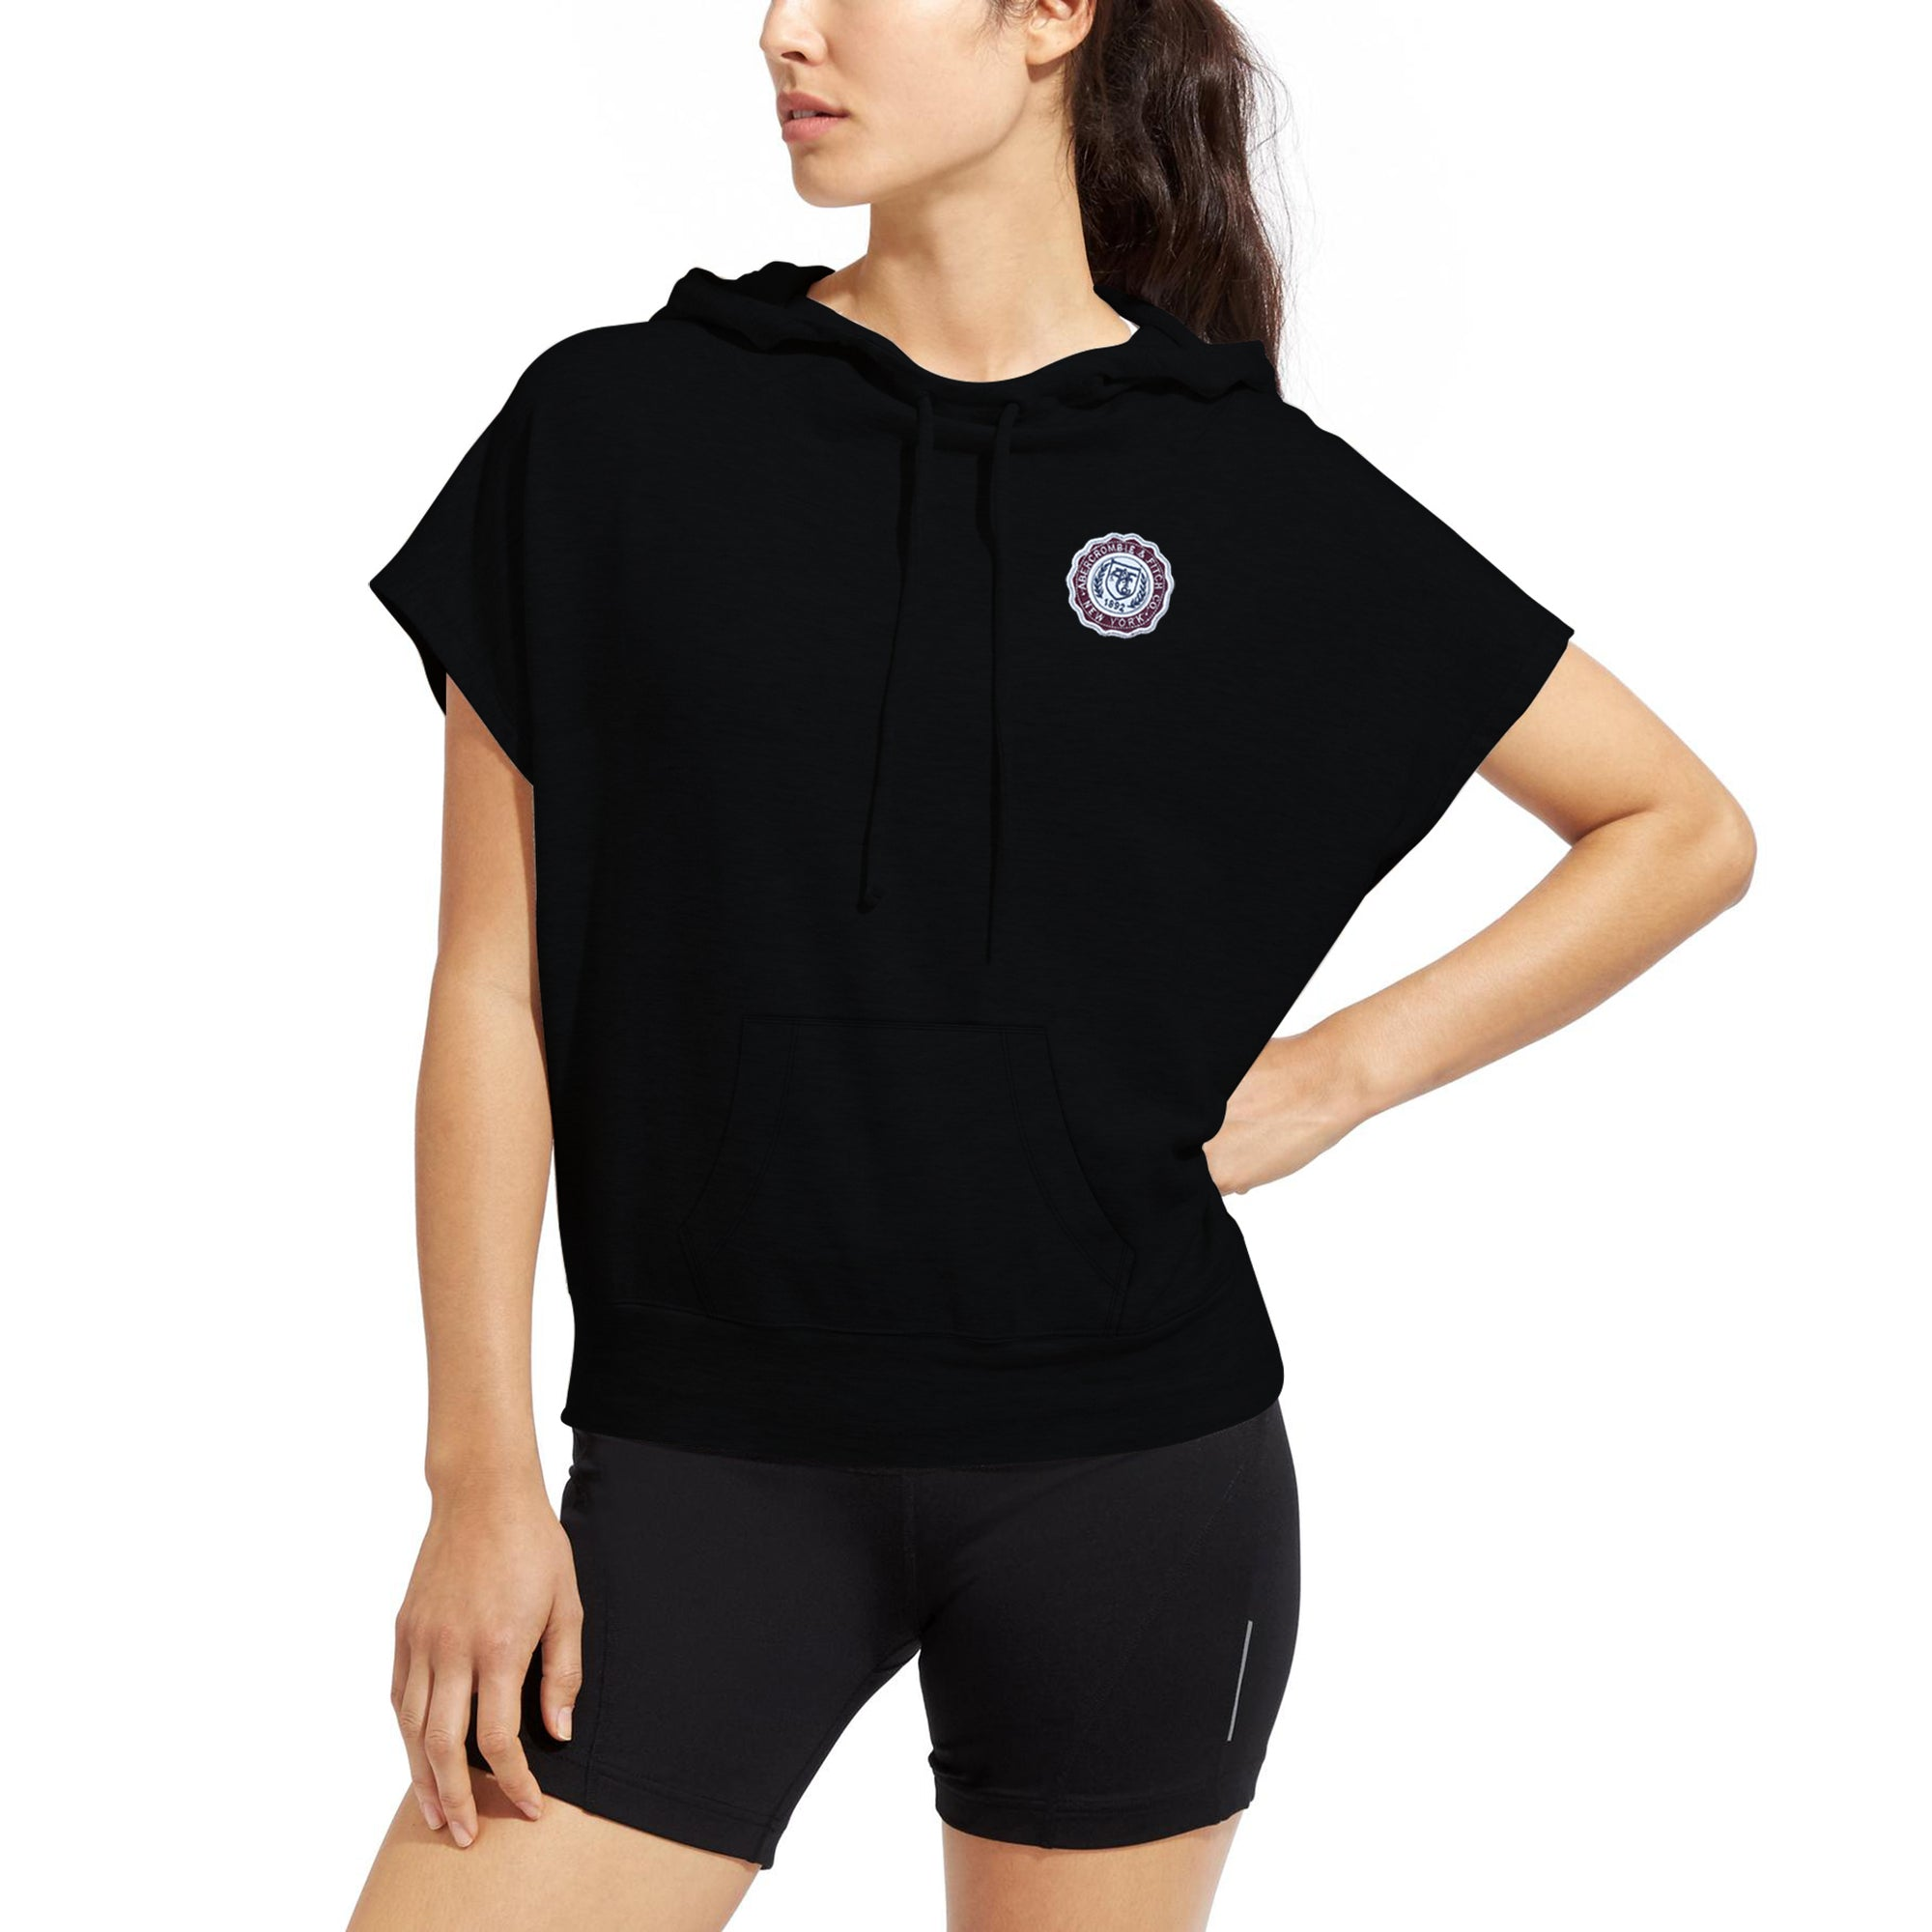 Next Fleece Short Sleeve Top For Ladies-Black-BE7032